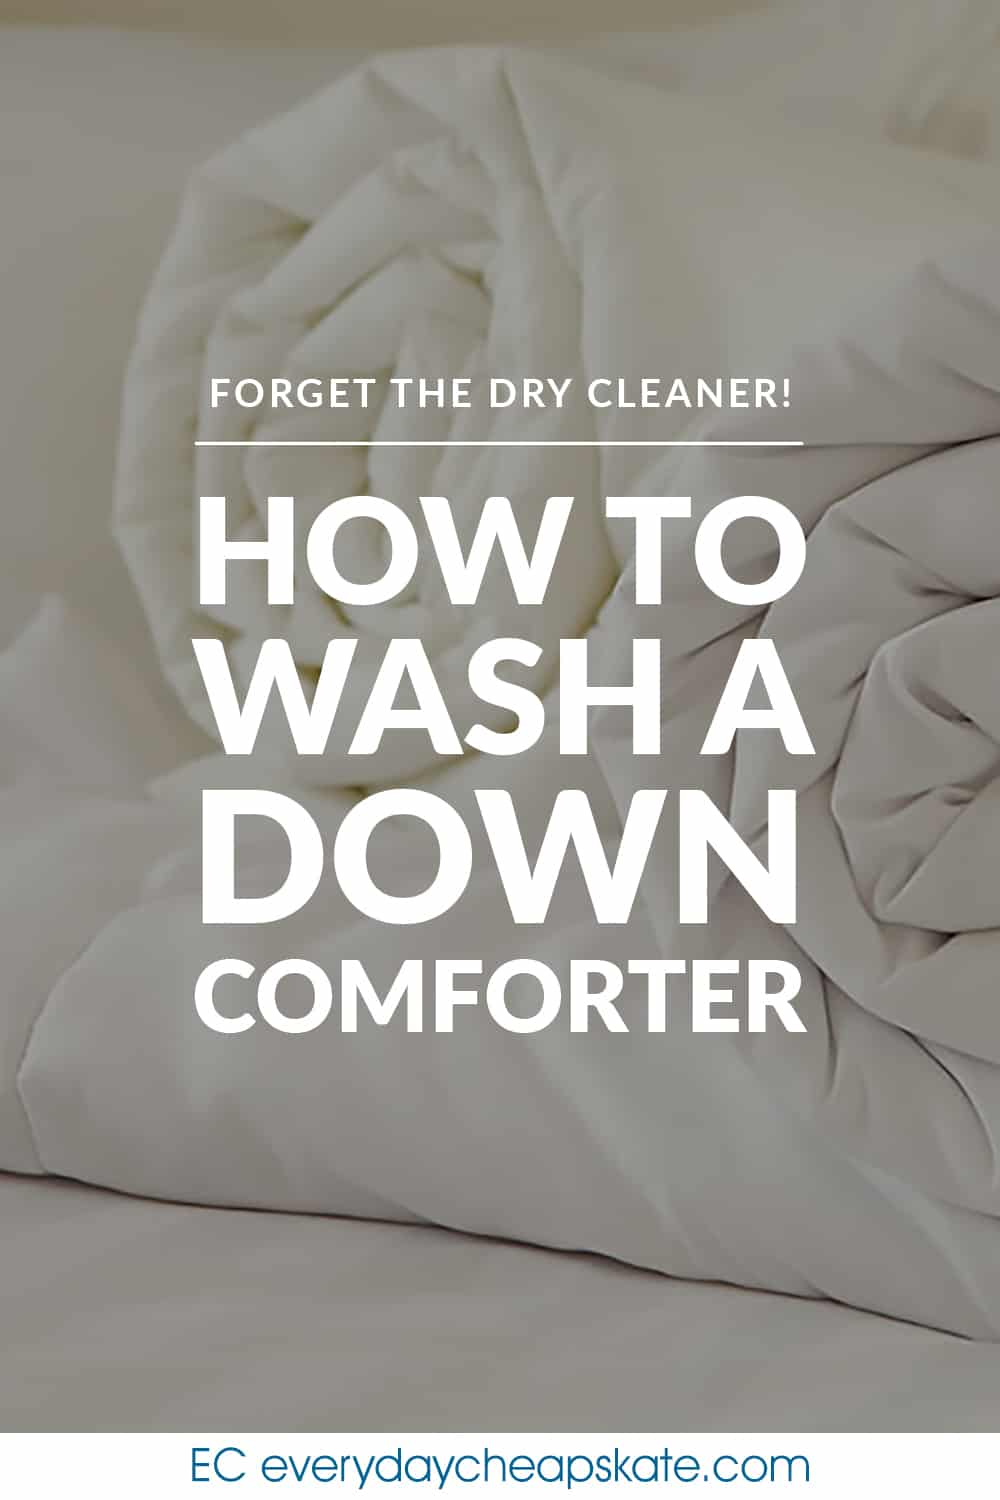 If You Ve Ever Wondered If It S Okay To Wash Your Down Comforter Instead Of Taking It To The Dry Cleaner Th Washing Down Comforter Down Comforter Dry Cleaners